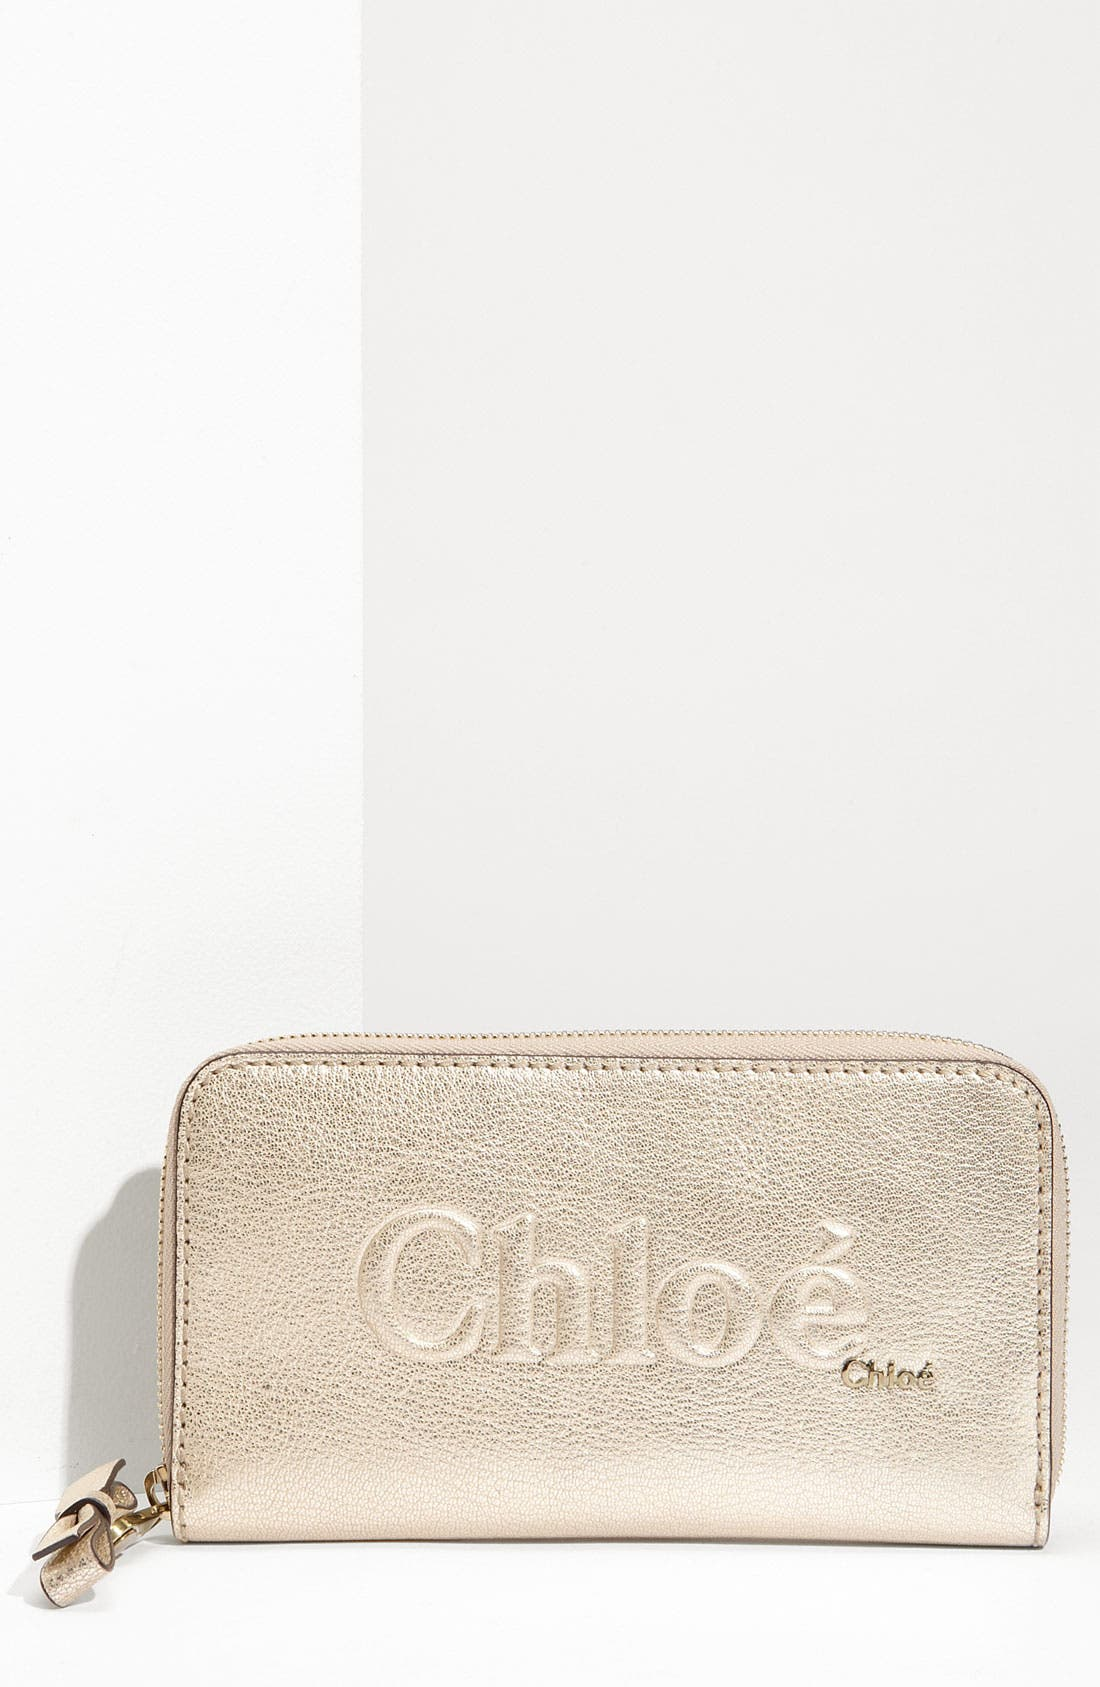 Main Image - Chloé 'Shadow Long' Metallic Leather Wallet